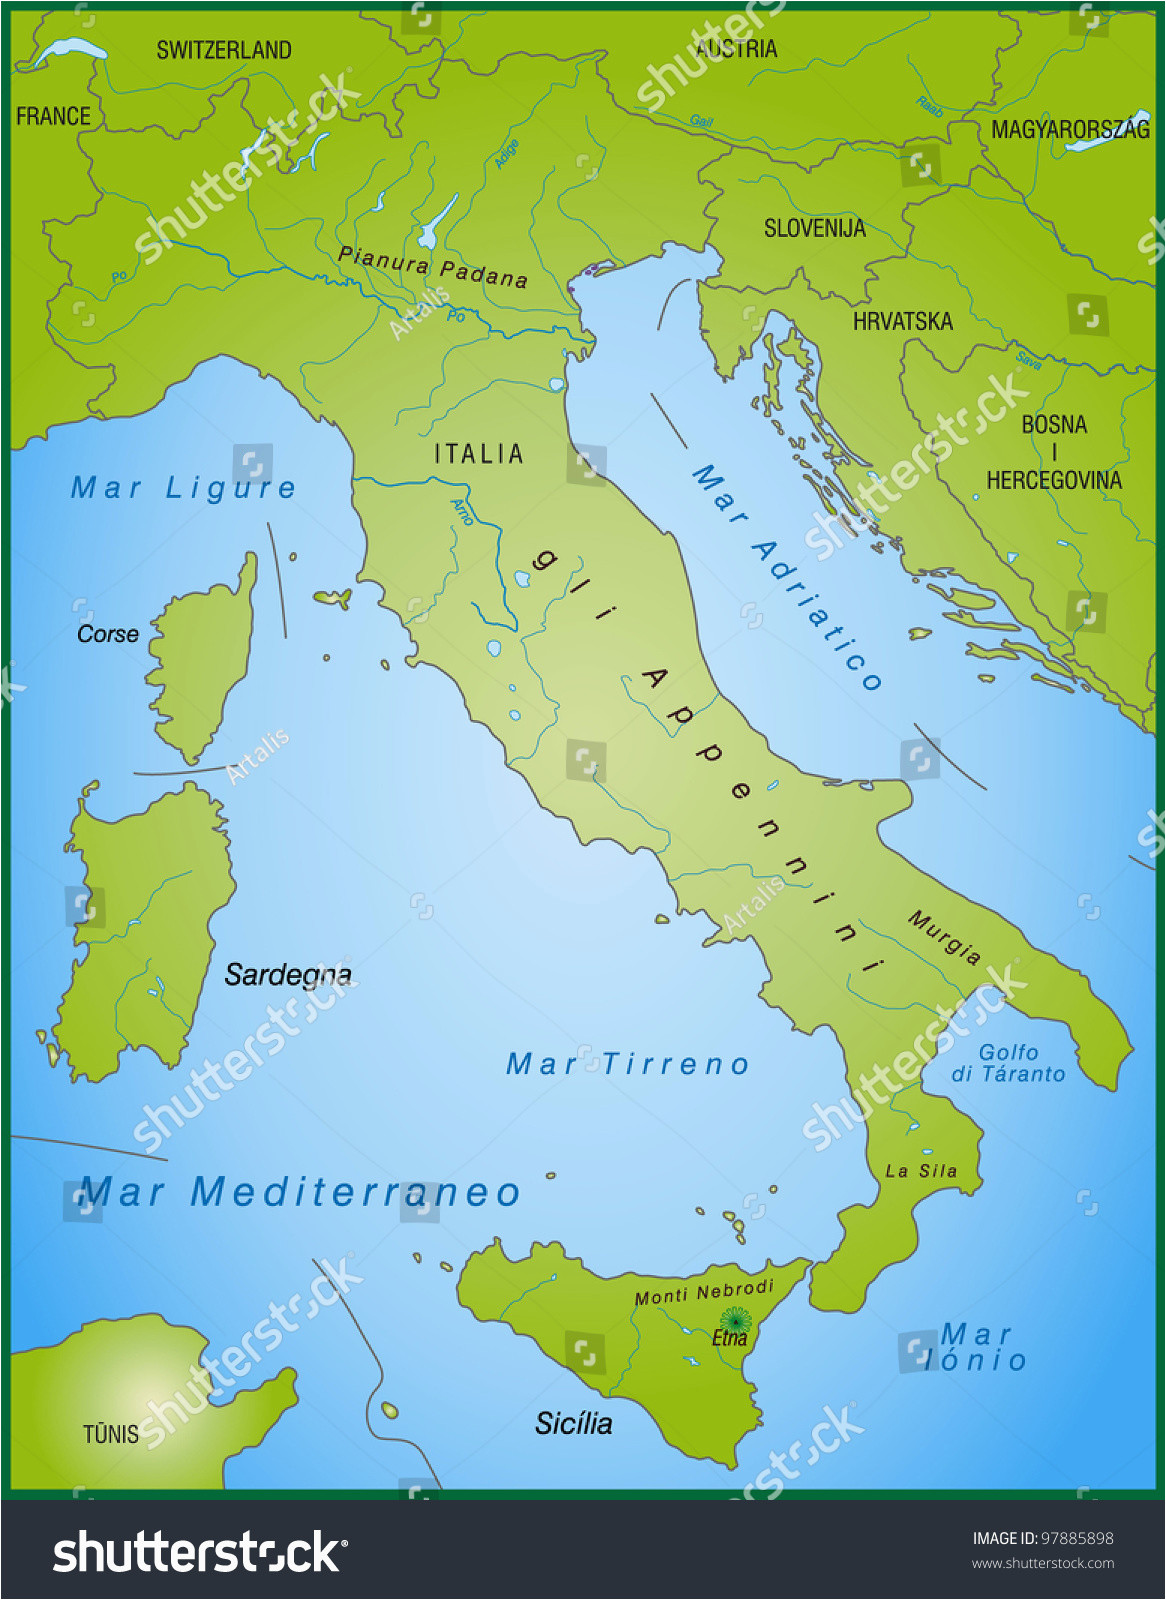 map of italy and surrounding countries printable map hd